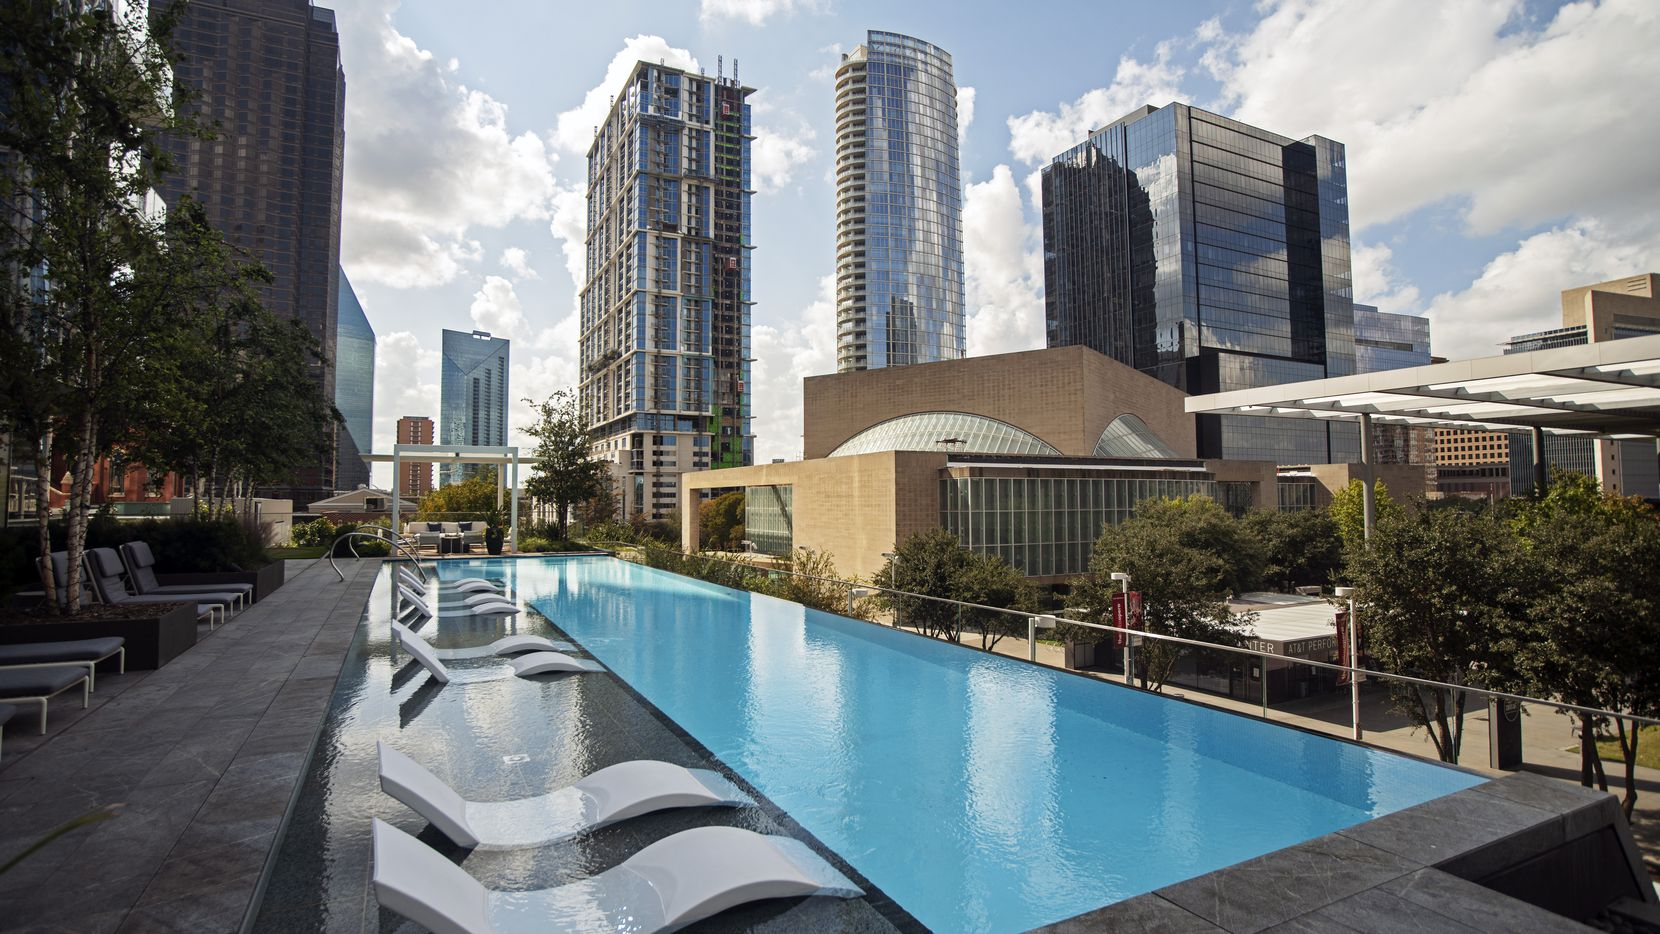 The Hall Arts Residences' infinity edge lap pool with views of the Arts District and downtown Dallas.